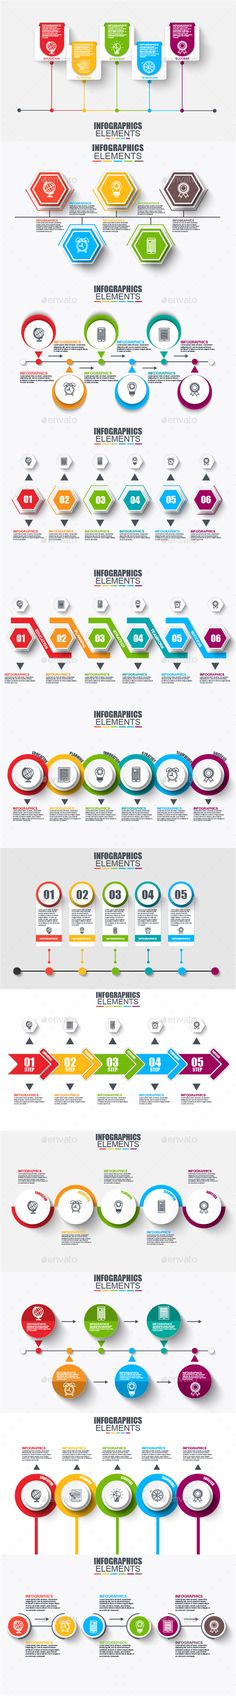 Timeline infographics by alexdndz Set of Infographic elements data visualization vector design template. Can be used for steps, options, business processes, workflo